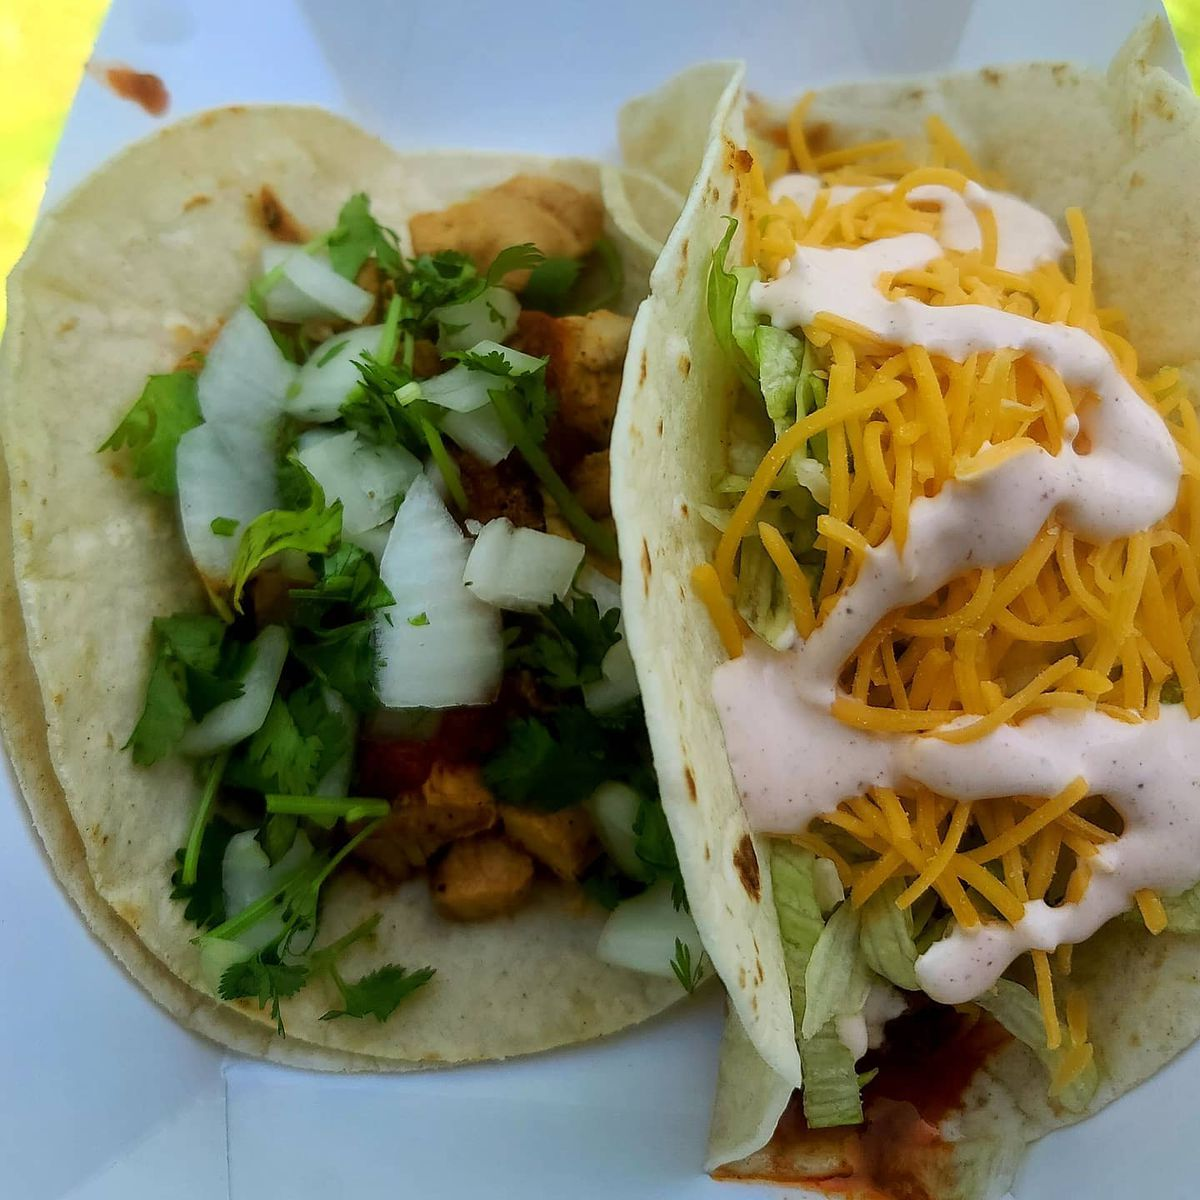 A taco with a corn tortilla, cilantro, and onion, and a flour taco with cheese, lettuce and a creamy dressing.